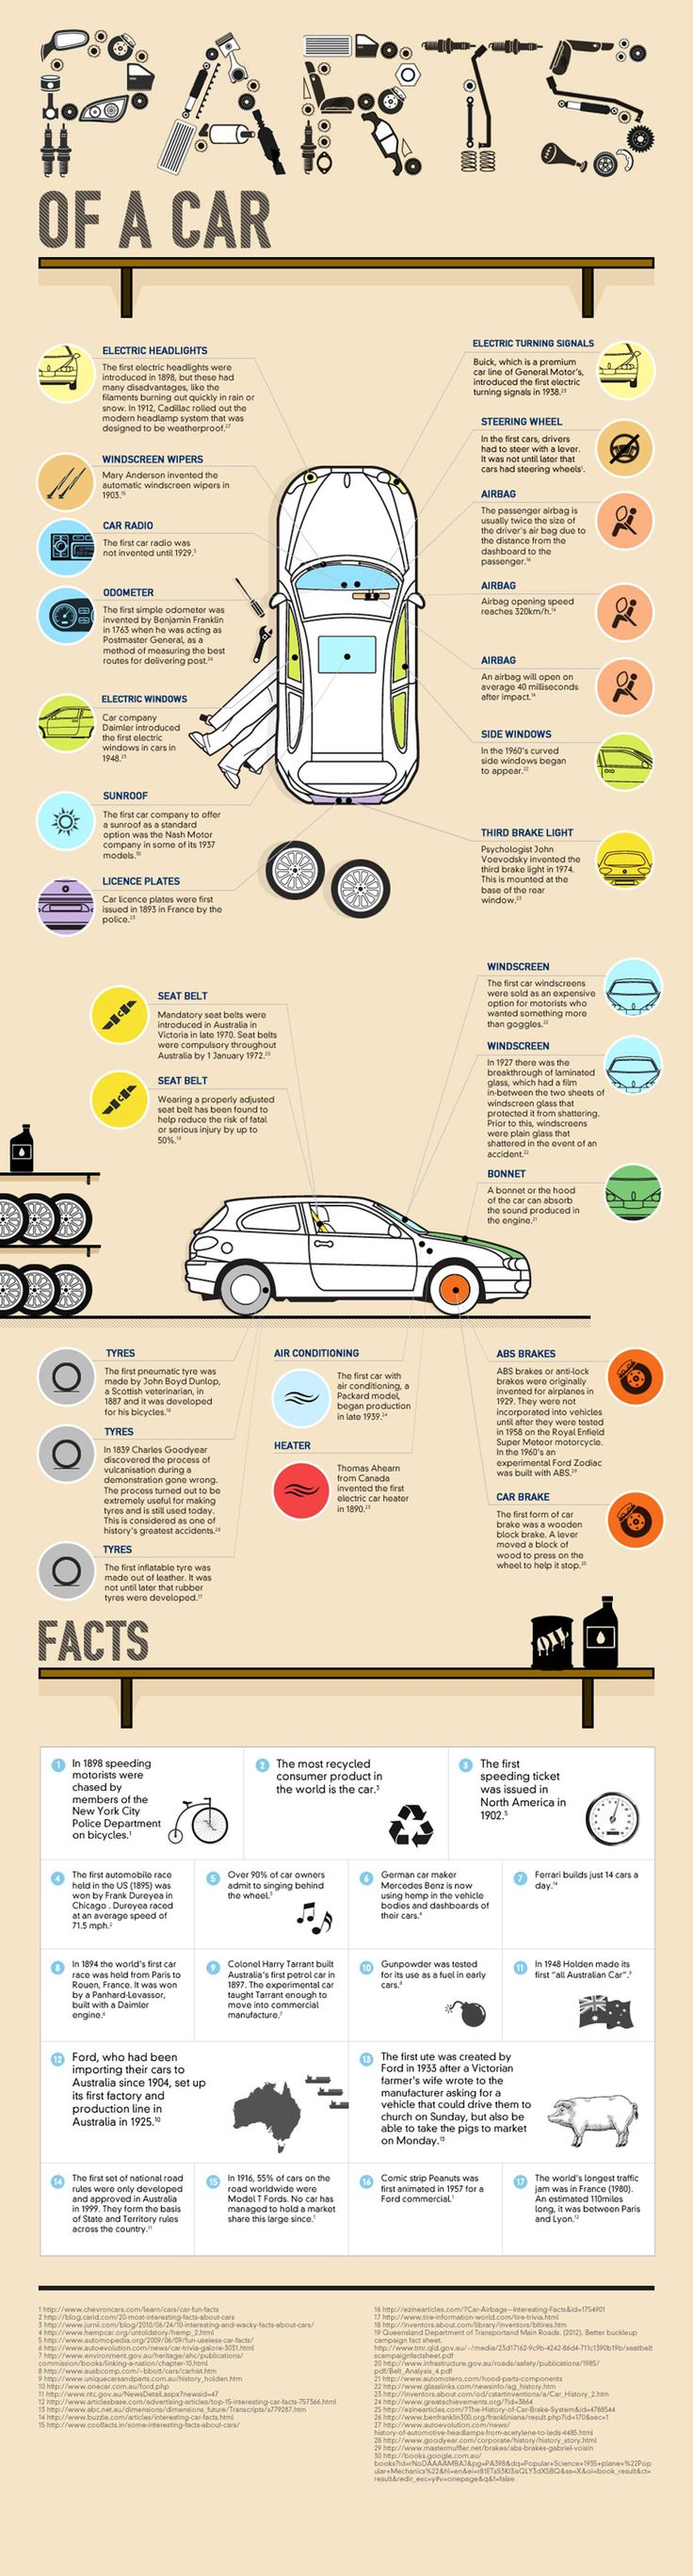 Parts of a Car Infographic. Topic: auto, autmobile, cars, anatomy, mechanic, tire, wheel,